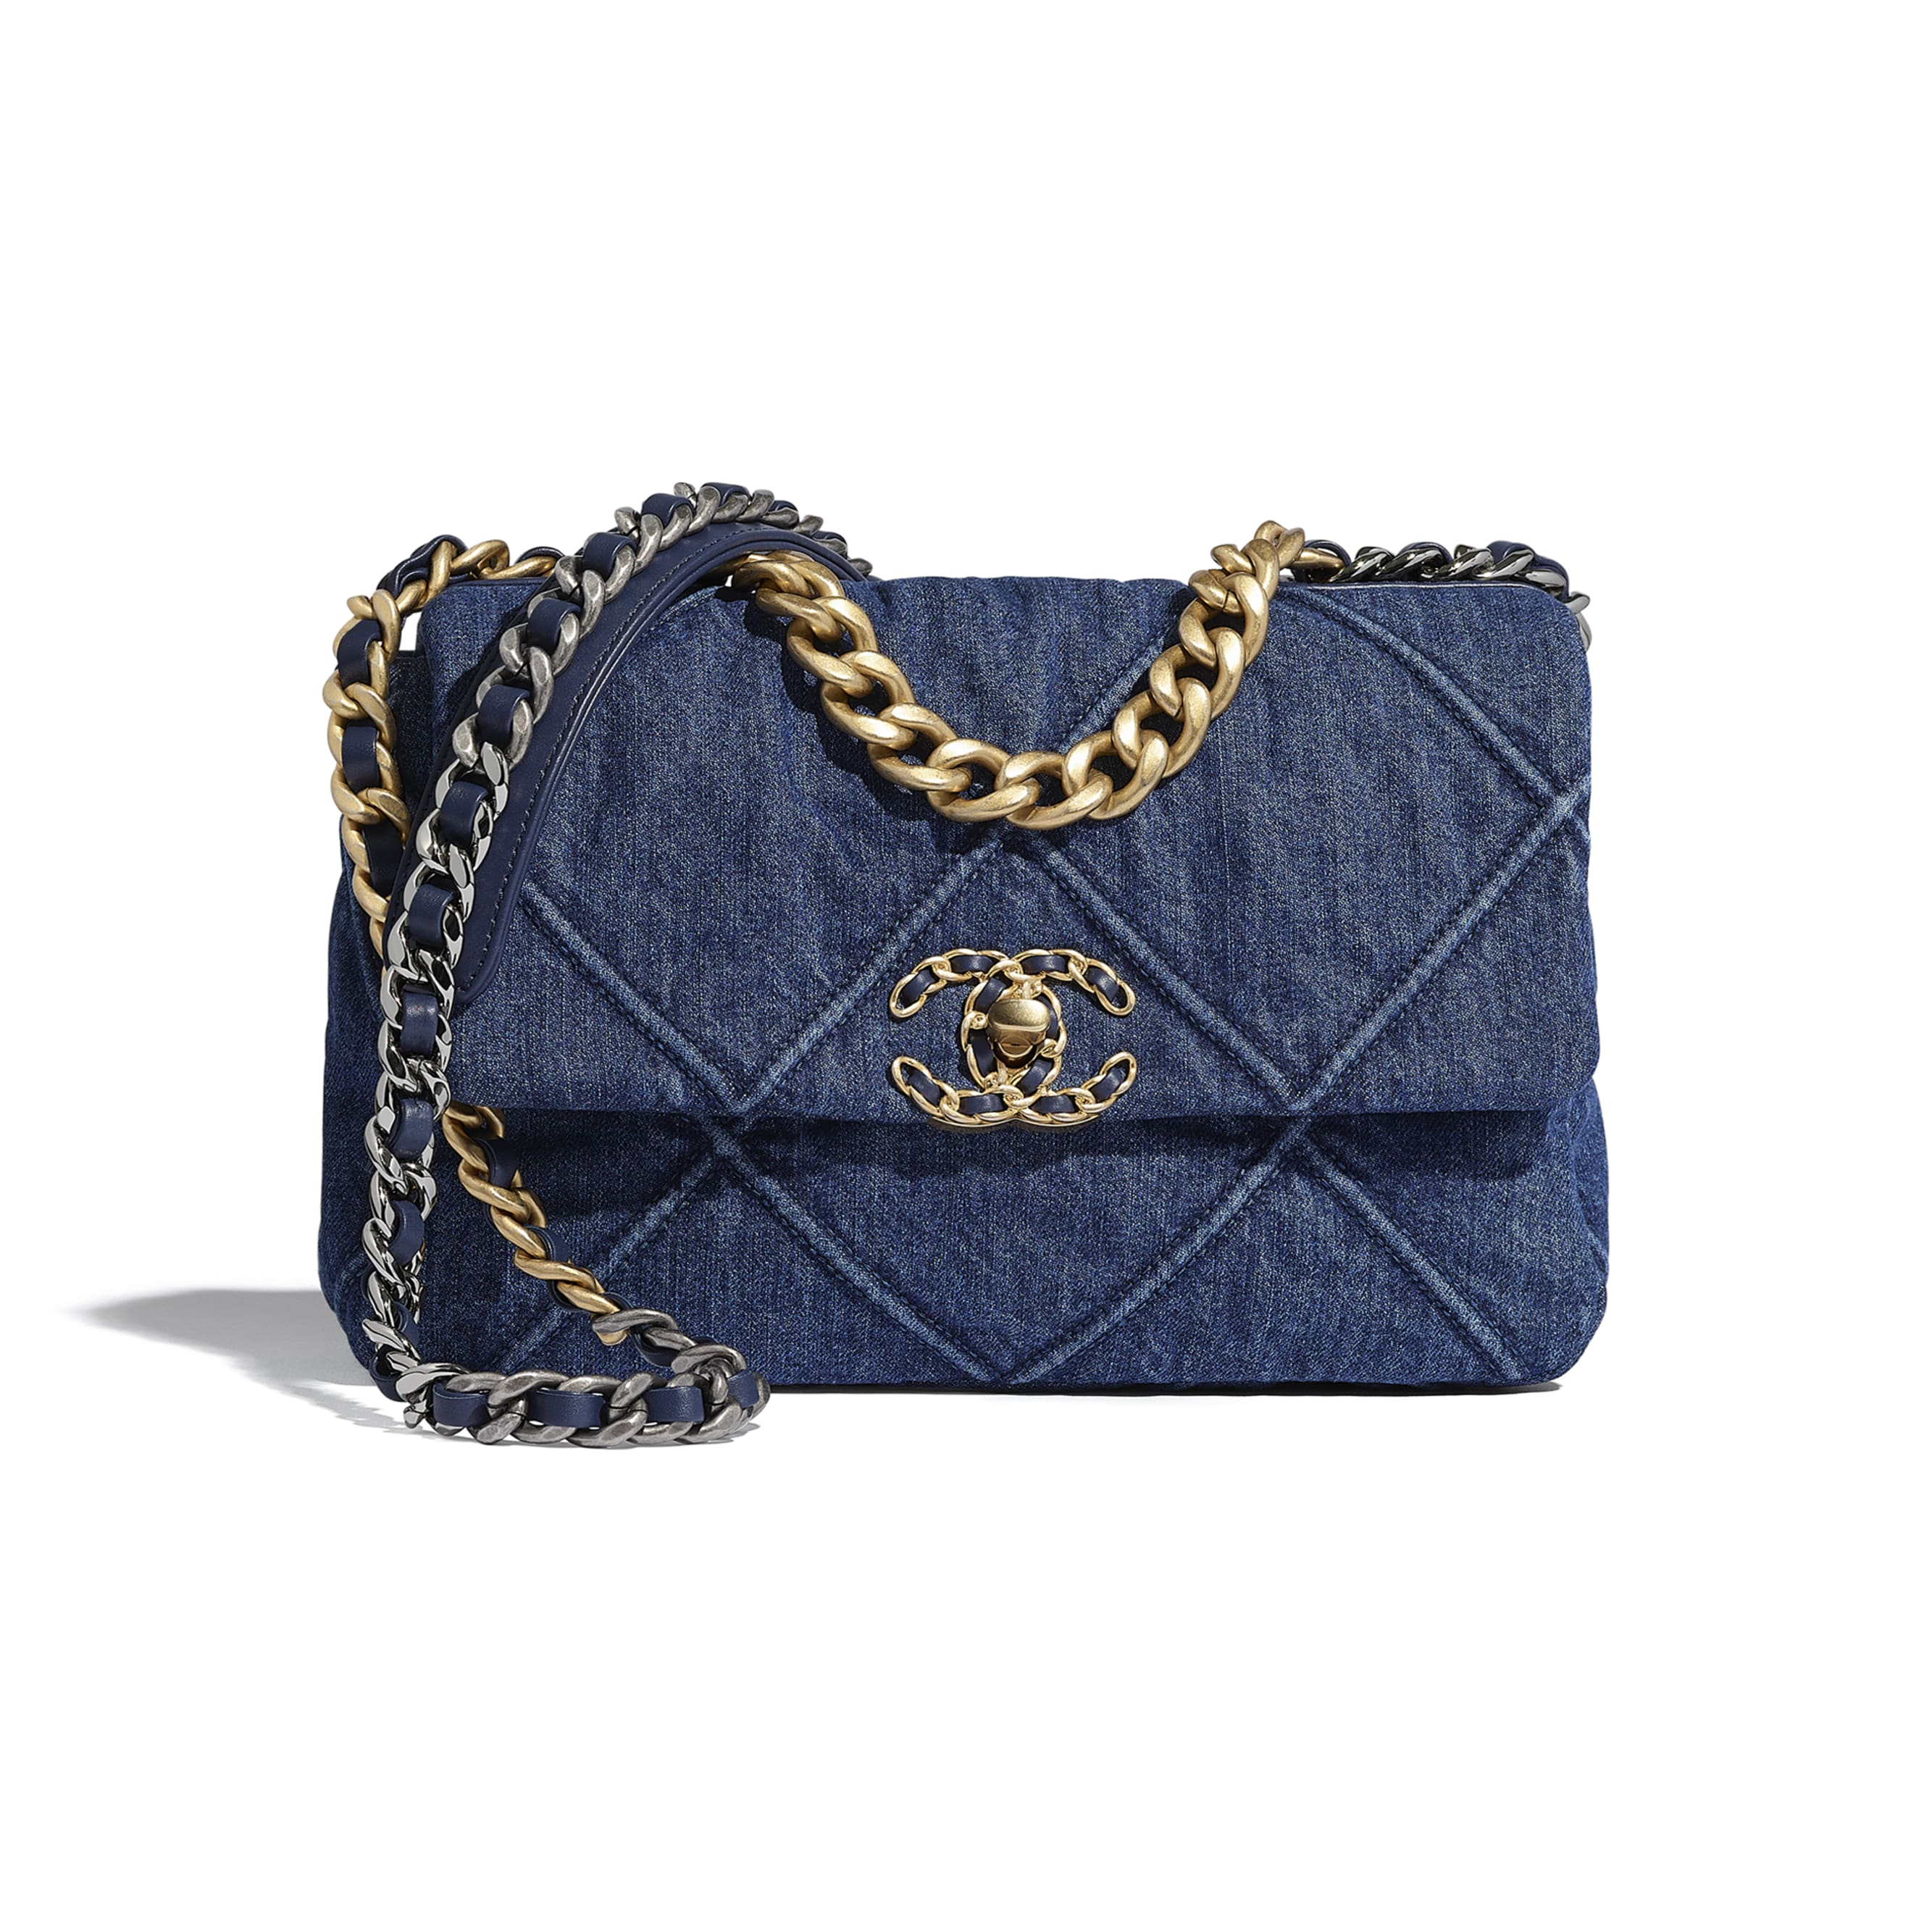 CHANEL 19 Flap Bag - Blue - Denim, Gold-Tone, Silver-Tone & Ruthenium-Finish Metal - CHANEL - Default view - see standard sized version